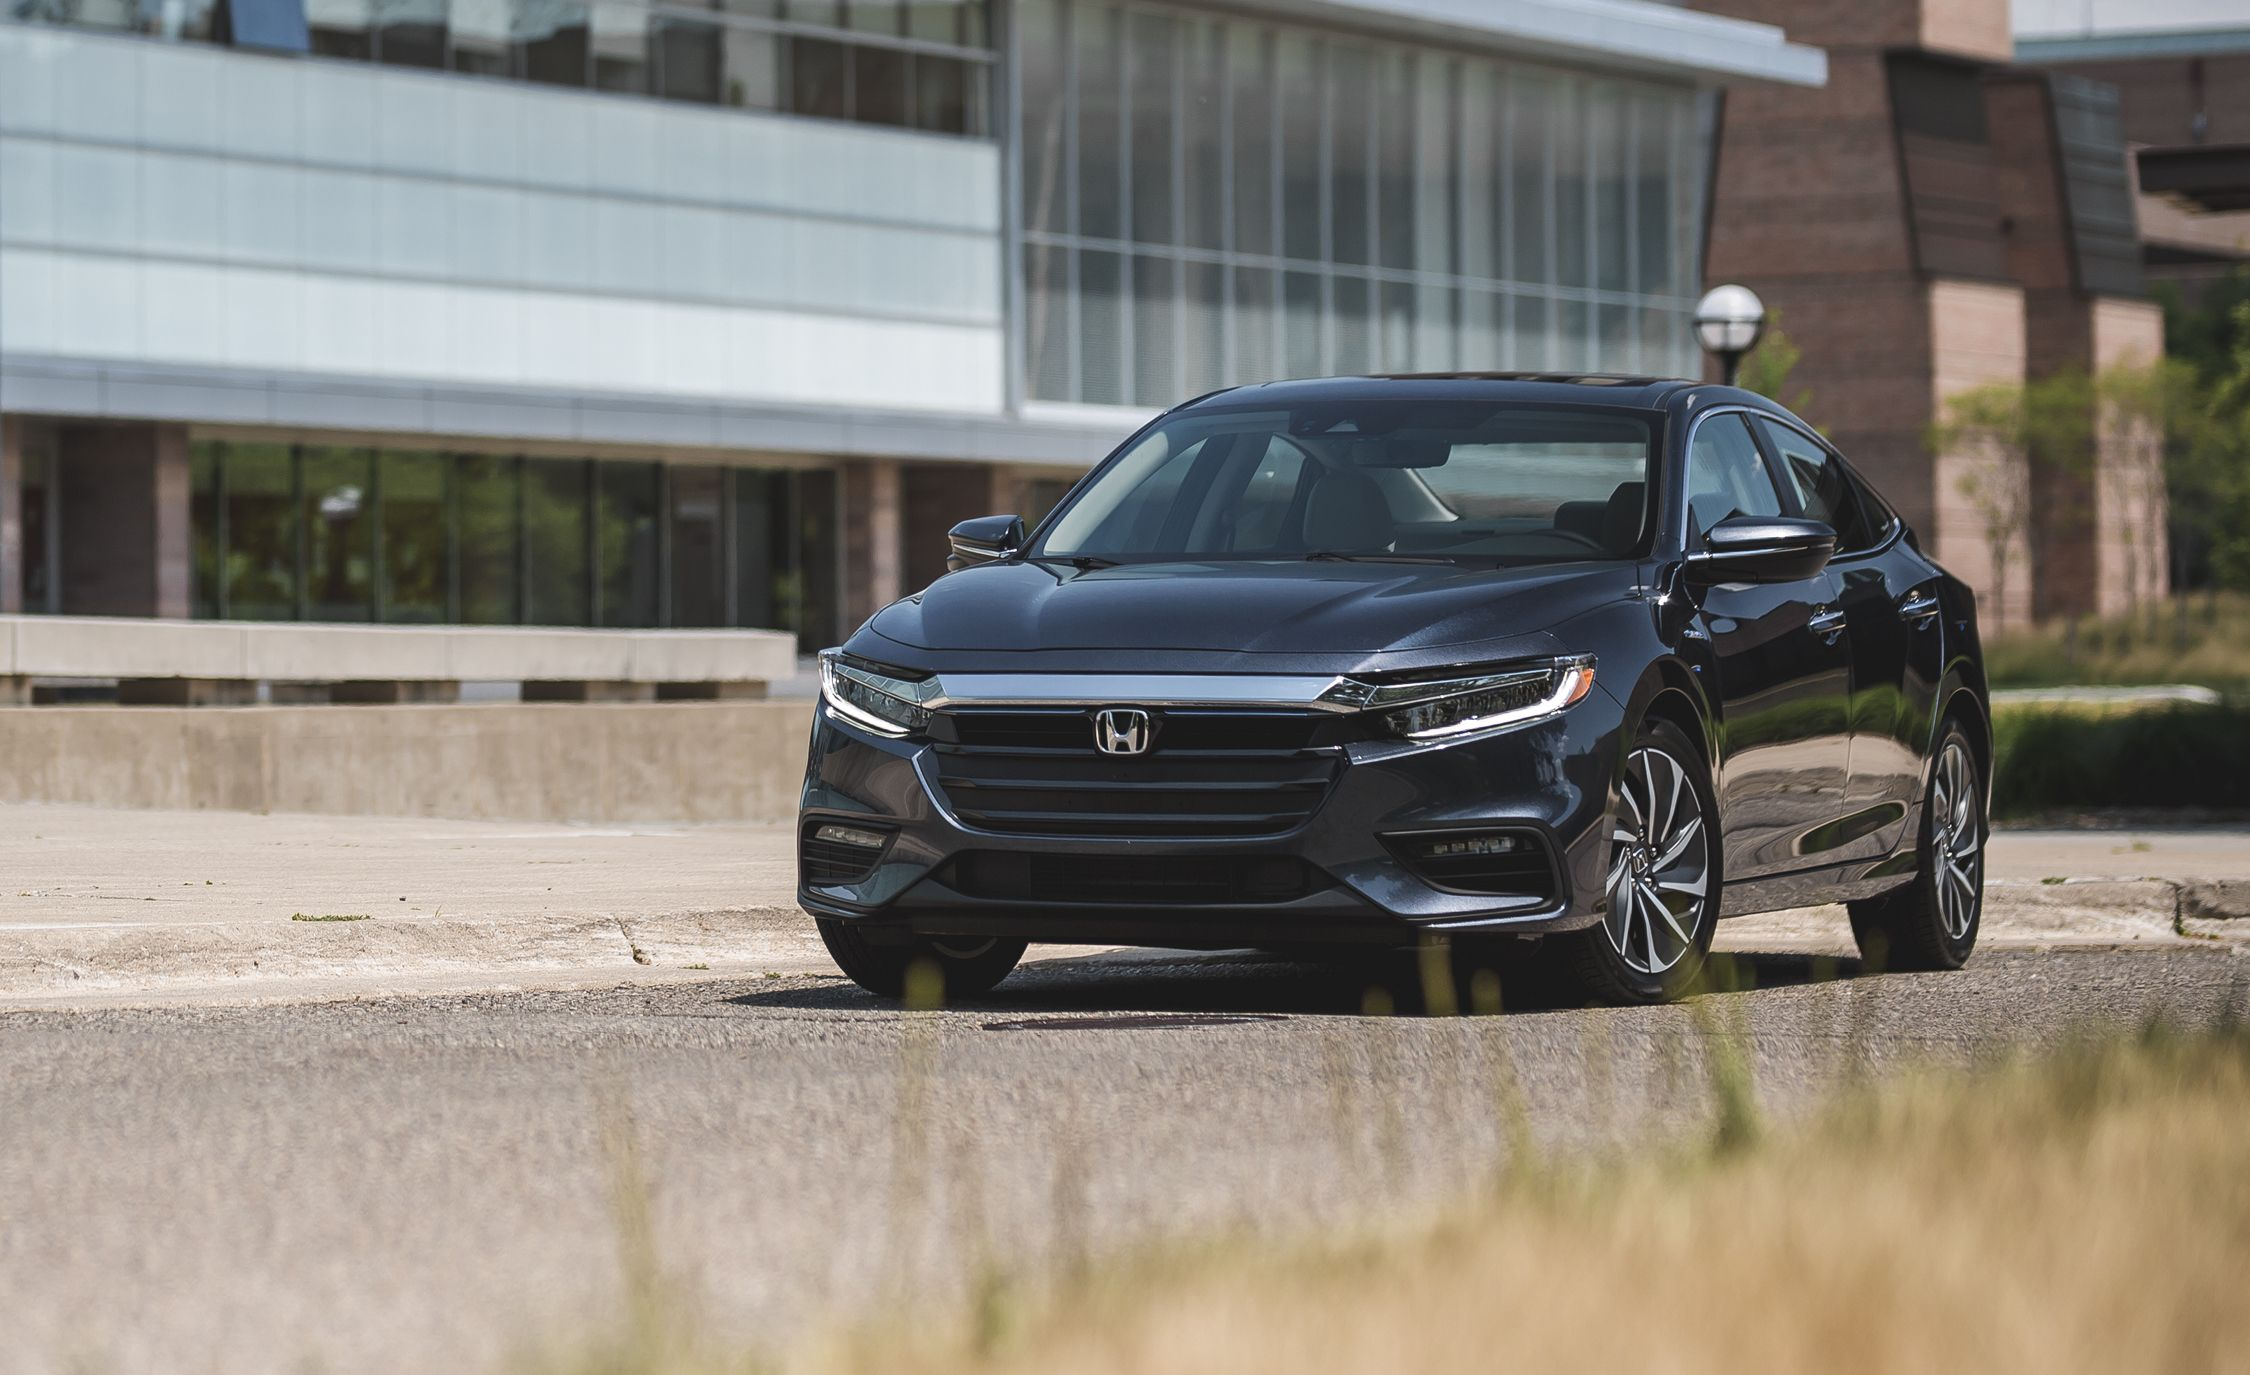 2019 Honda Insight A Civic With Better Gas Mileage